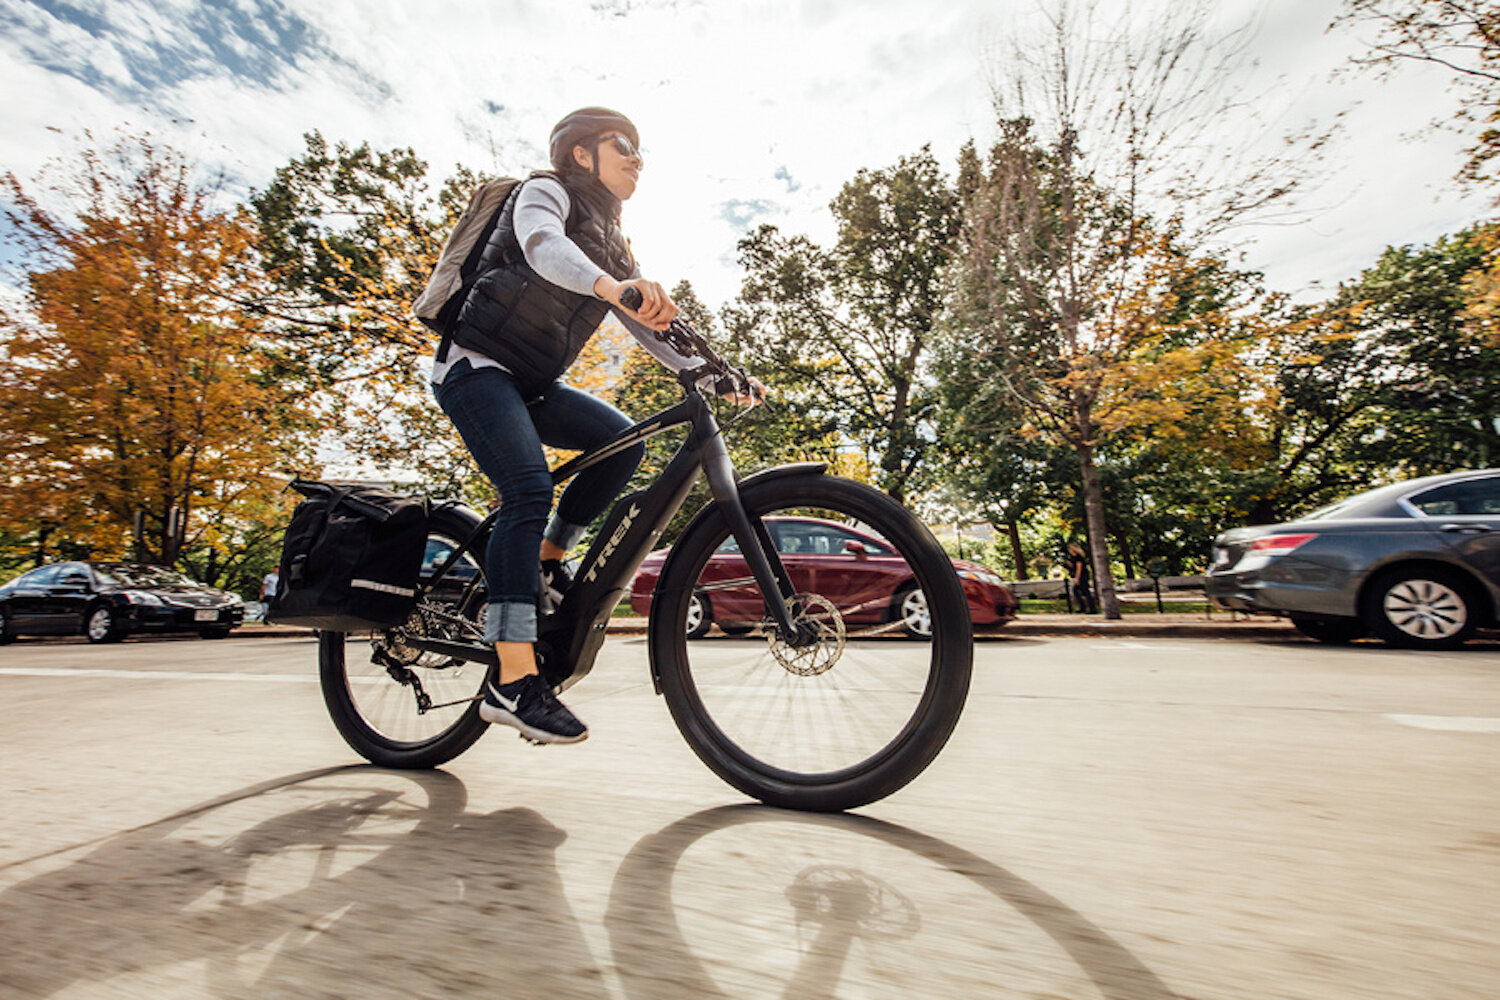 Pedal-assist e-bikes that we recommend include Trek Super Commuter+ (commuter/hybrid; pictured), Trek CrossRip+ (commuter/hybrid), Trek Super Commuter+ (commuter/hybrid), Trek Verve+ (commuter/hybrid), Trek Dual Sport+ (commuter/hybrid), and Trek Powerfly (mountain bike), as well as Electra Townie Go! (comfort/cruiser).